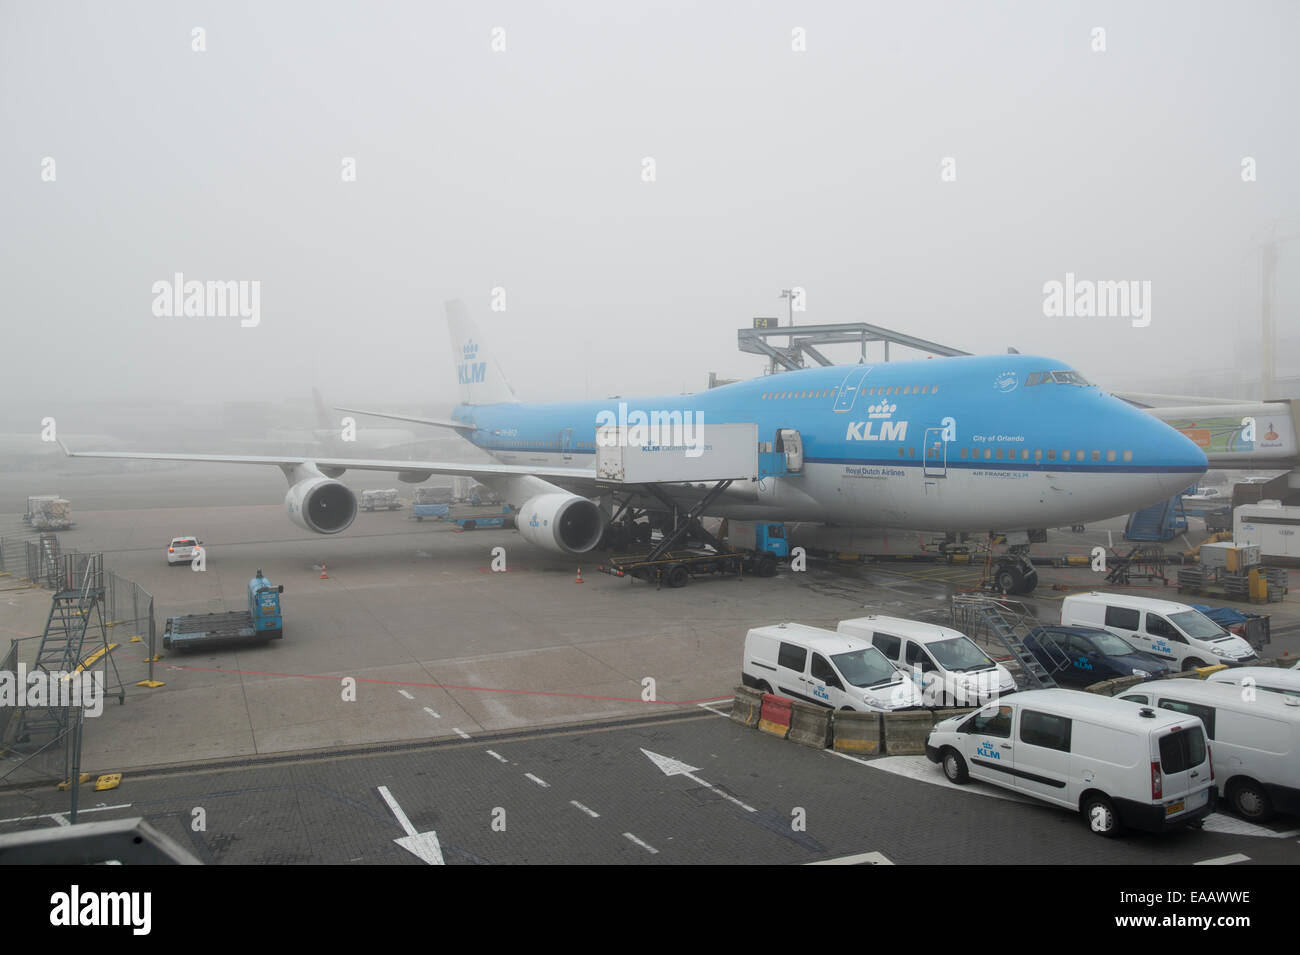 Fog delays a KLM Boeing 747 airliner from taking off at Amsterdam Schiphol Airport (Editorial use only). - Stock Image